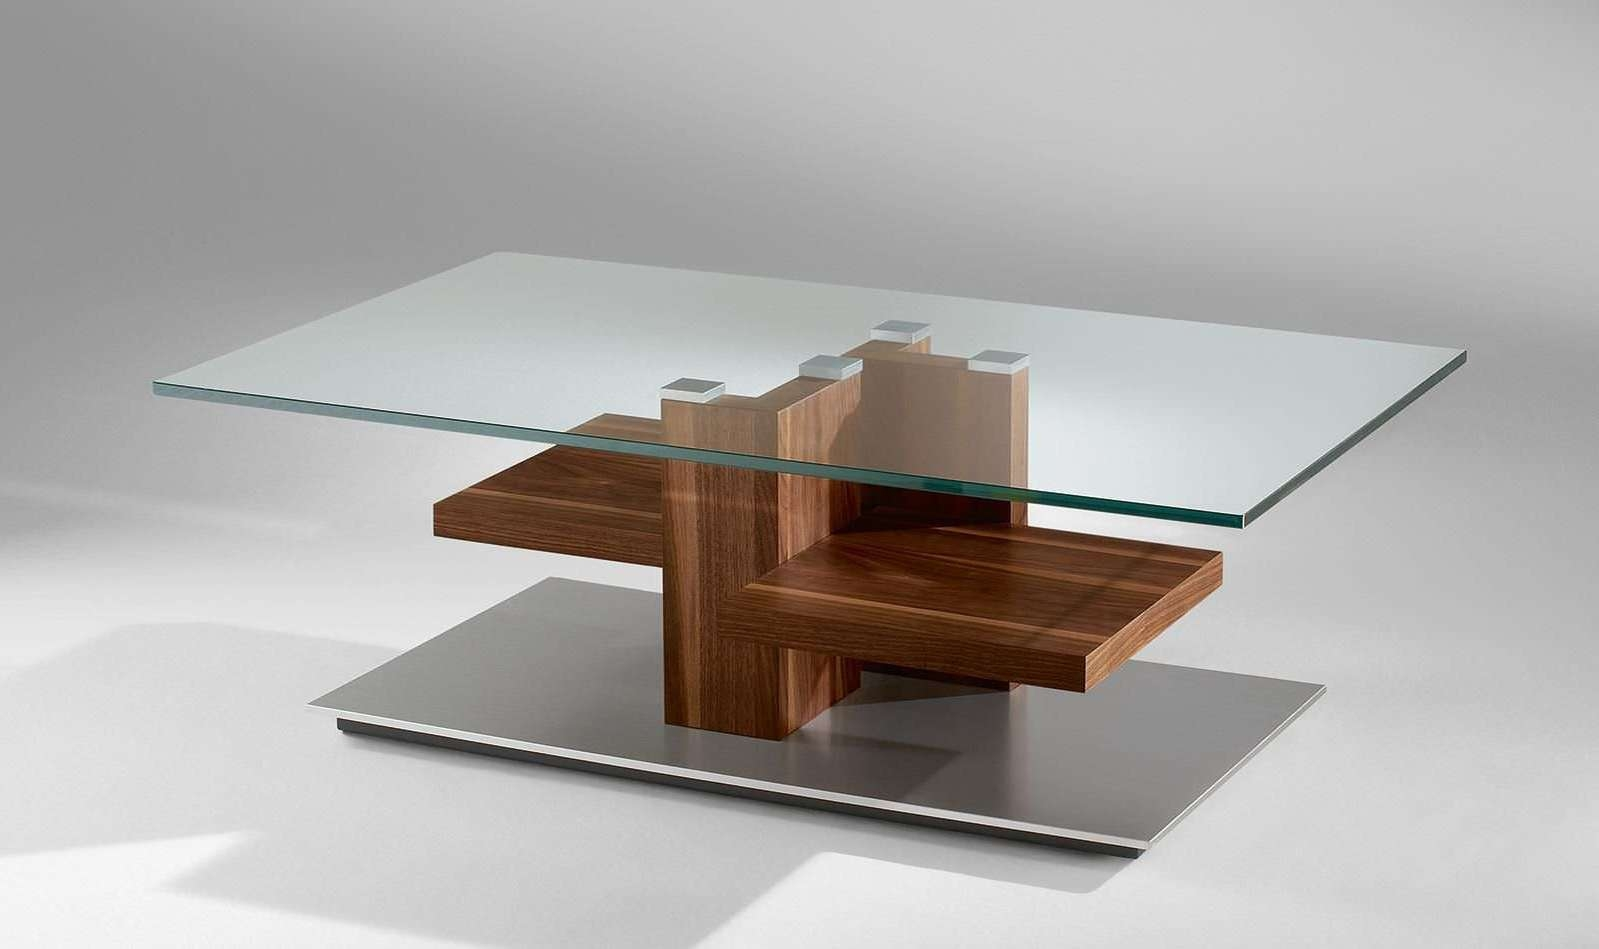 Wood & Glass Coffee Table – Sturdy Wooden Leg Construction Inside Well Known Dark Wood Coffee Tables With Glass Top (View 8 of 23)